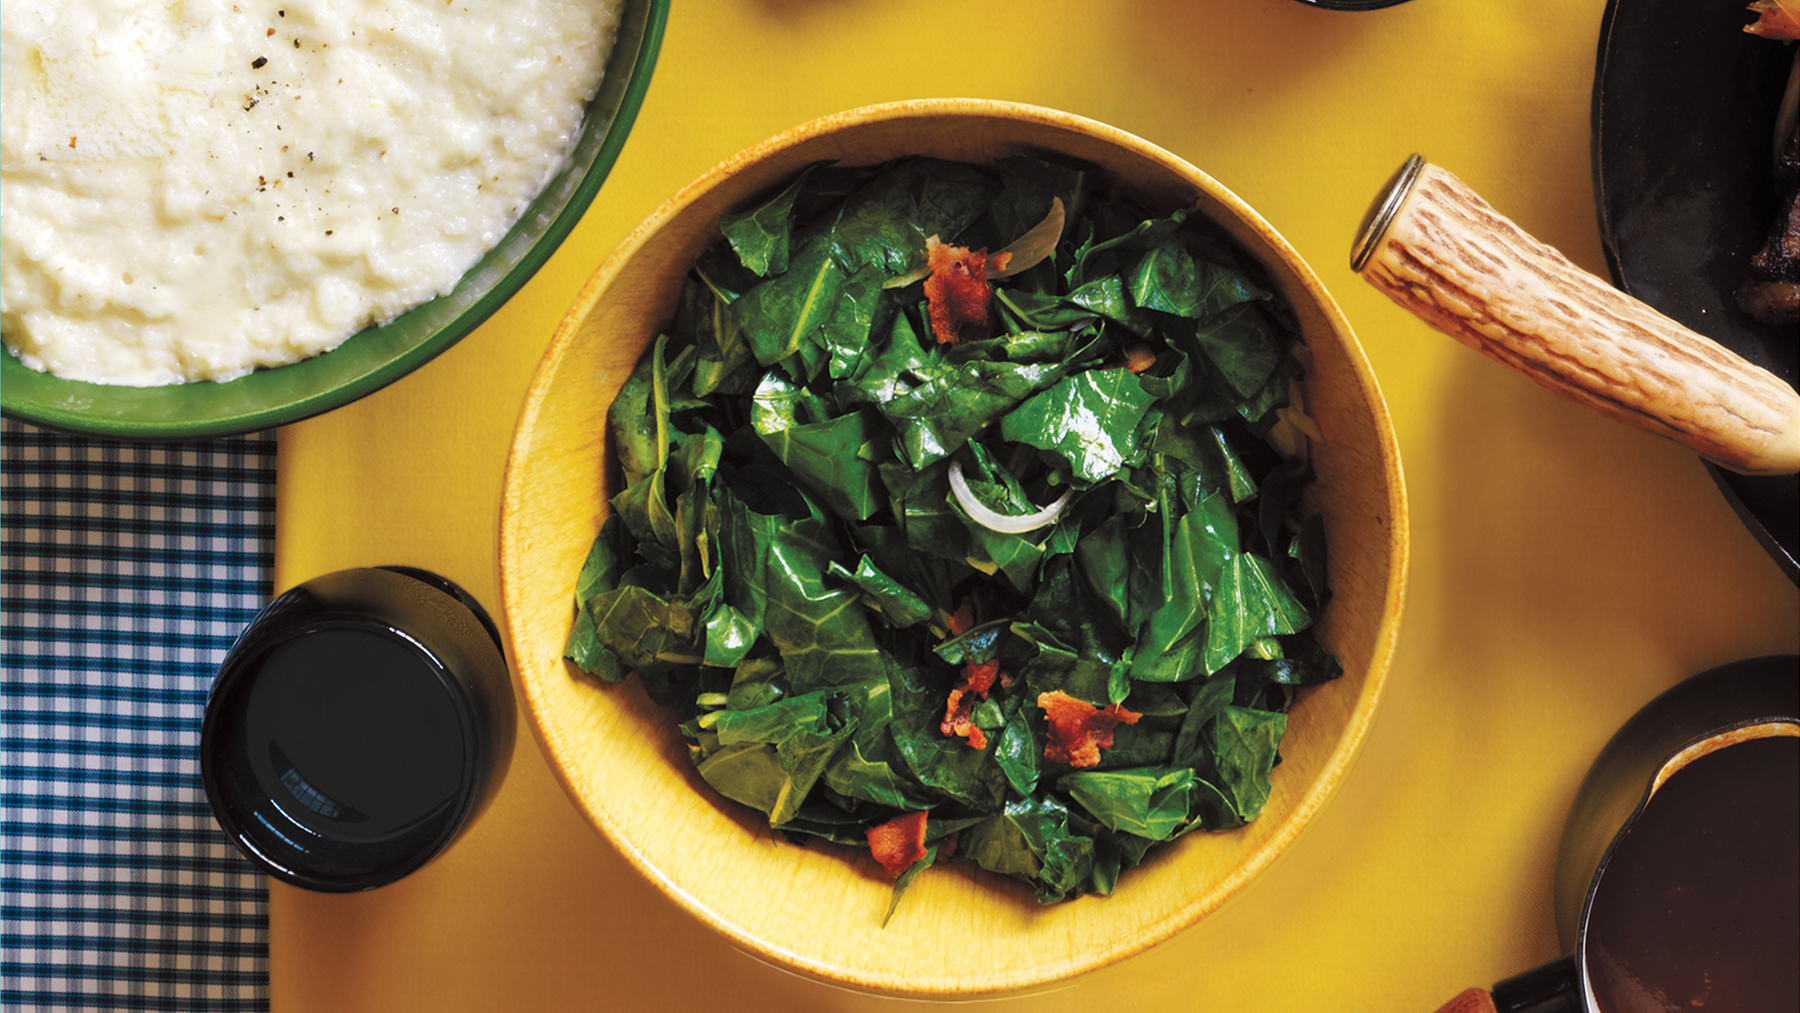 BBQ side dishes - barbecue sides for pulled pork, brisket, and more (collards)